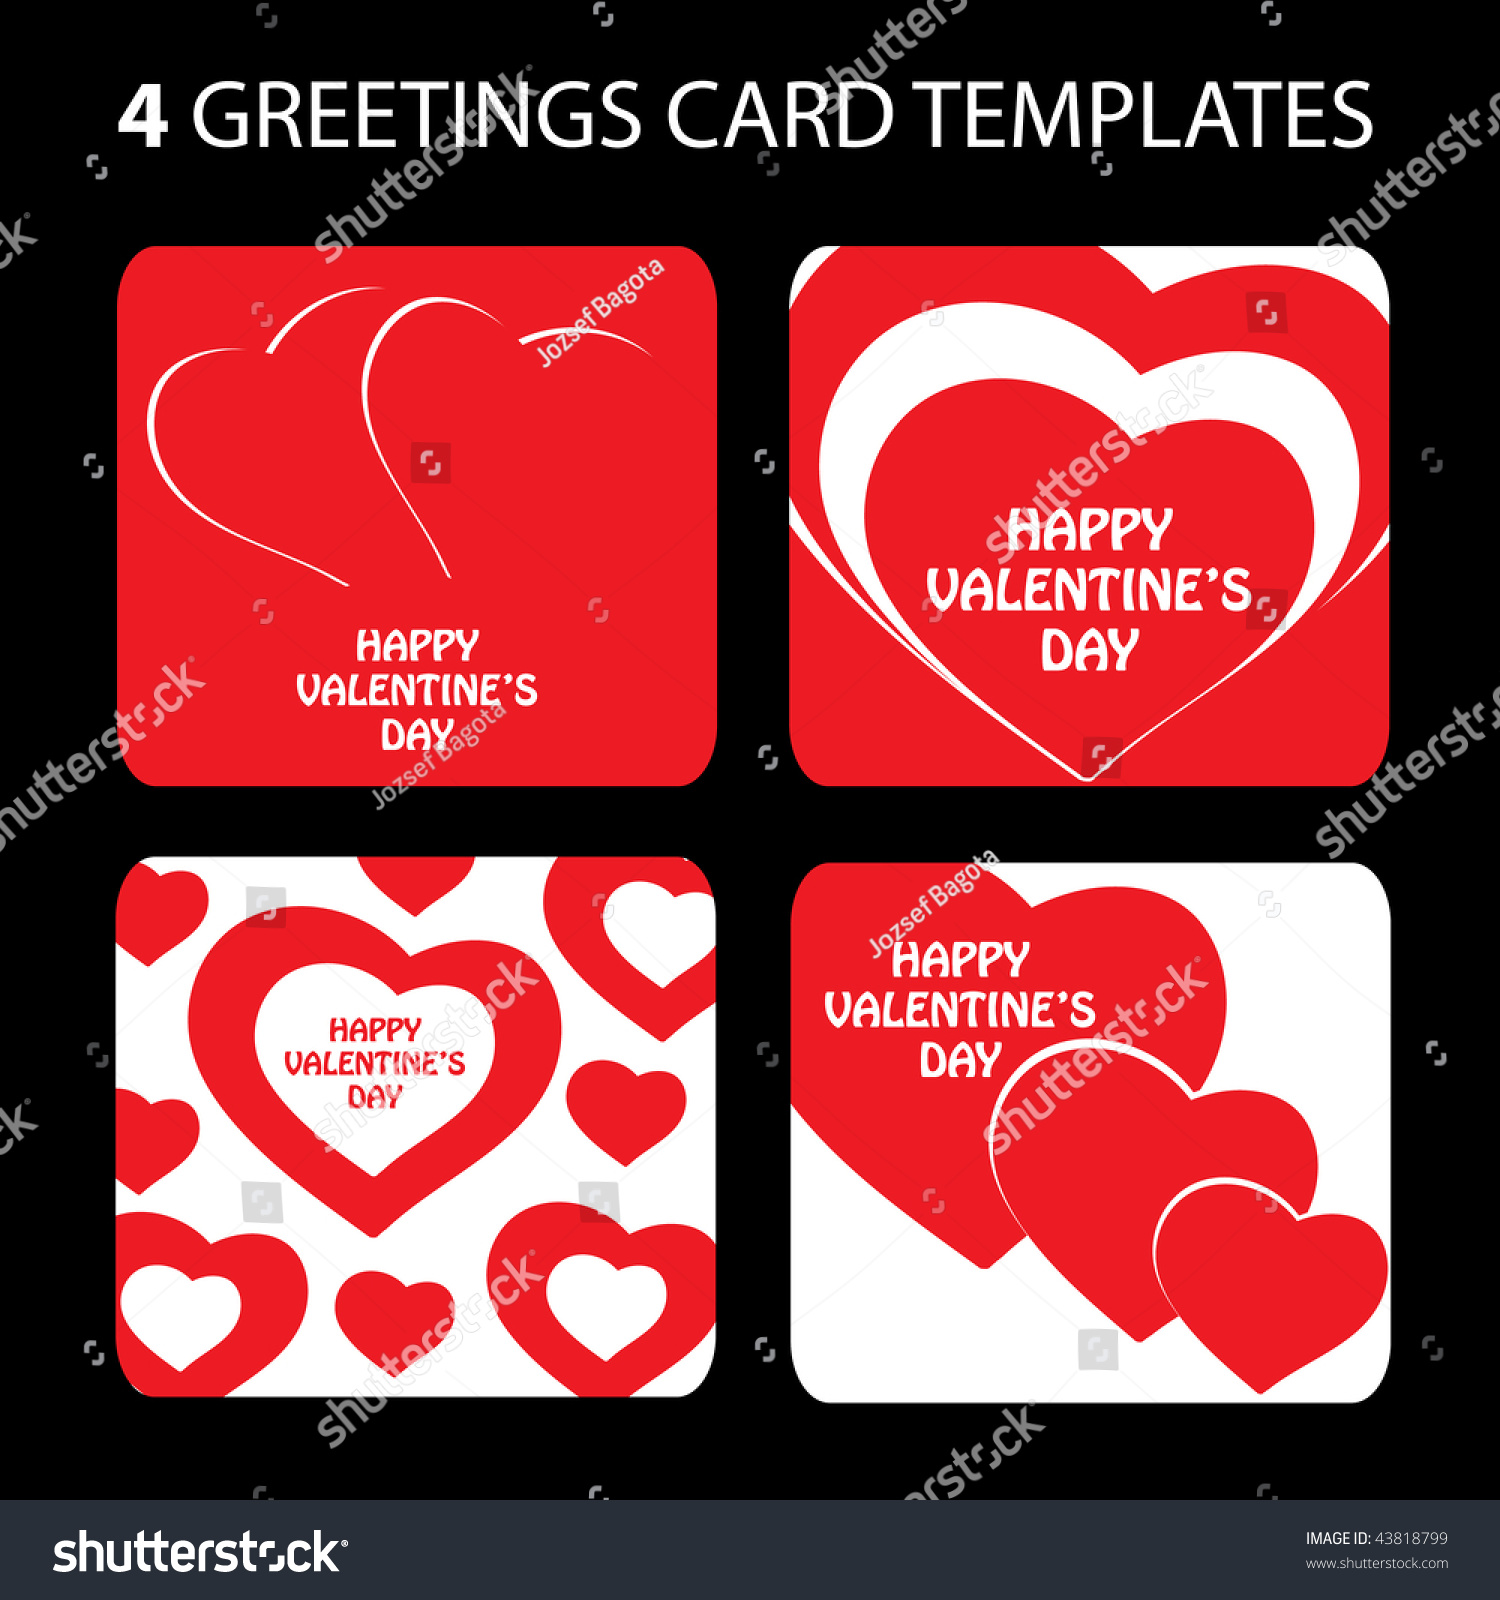 4 Greeting Cards Valentines Day Stock Vector 43818799 Shutterstock